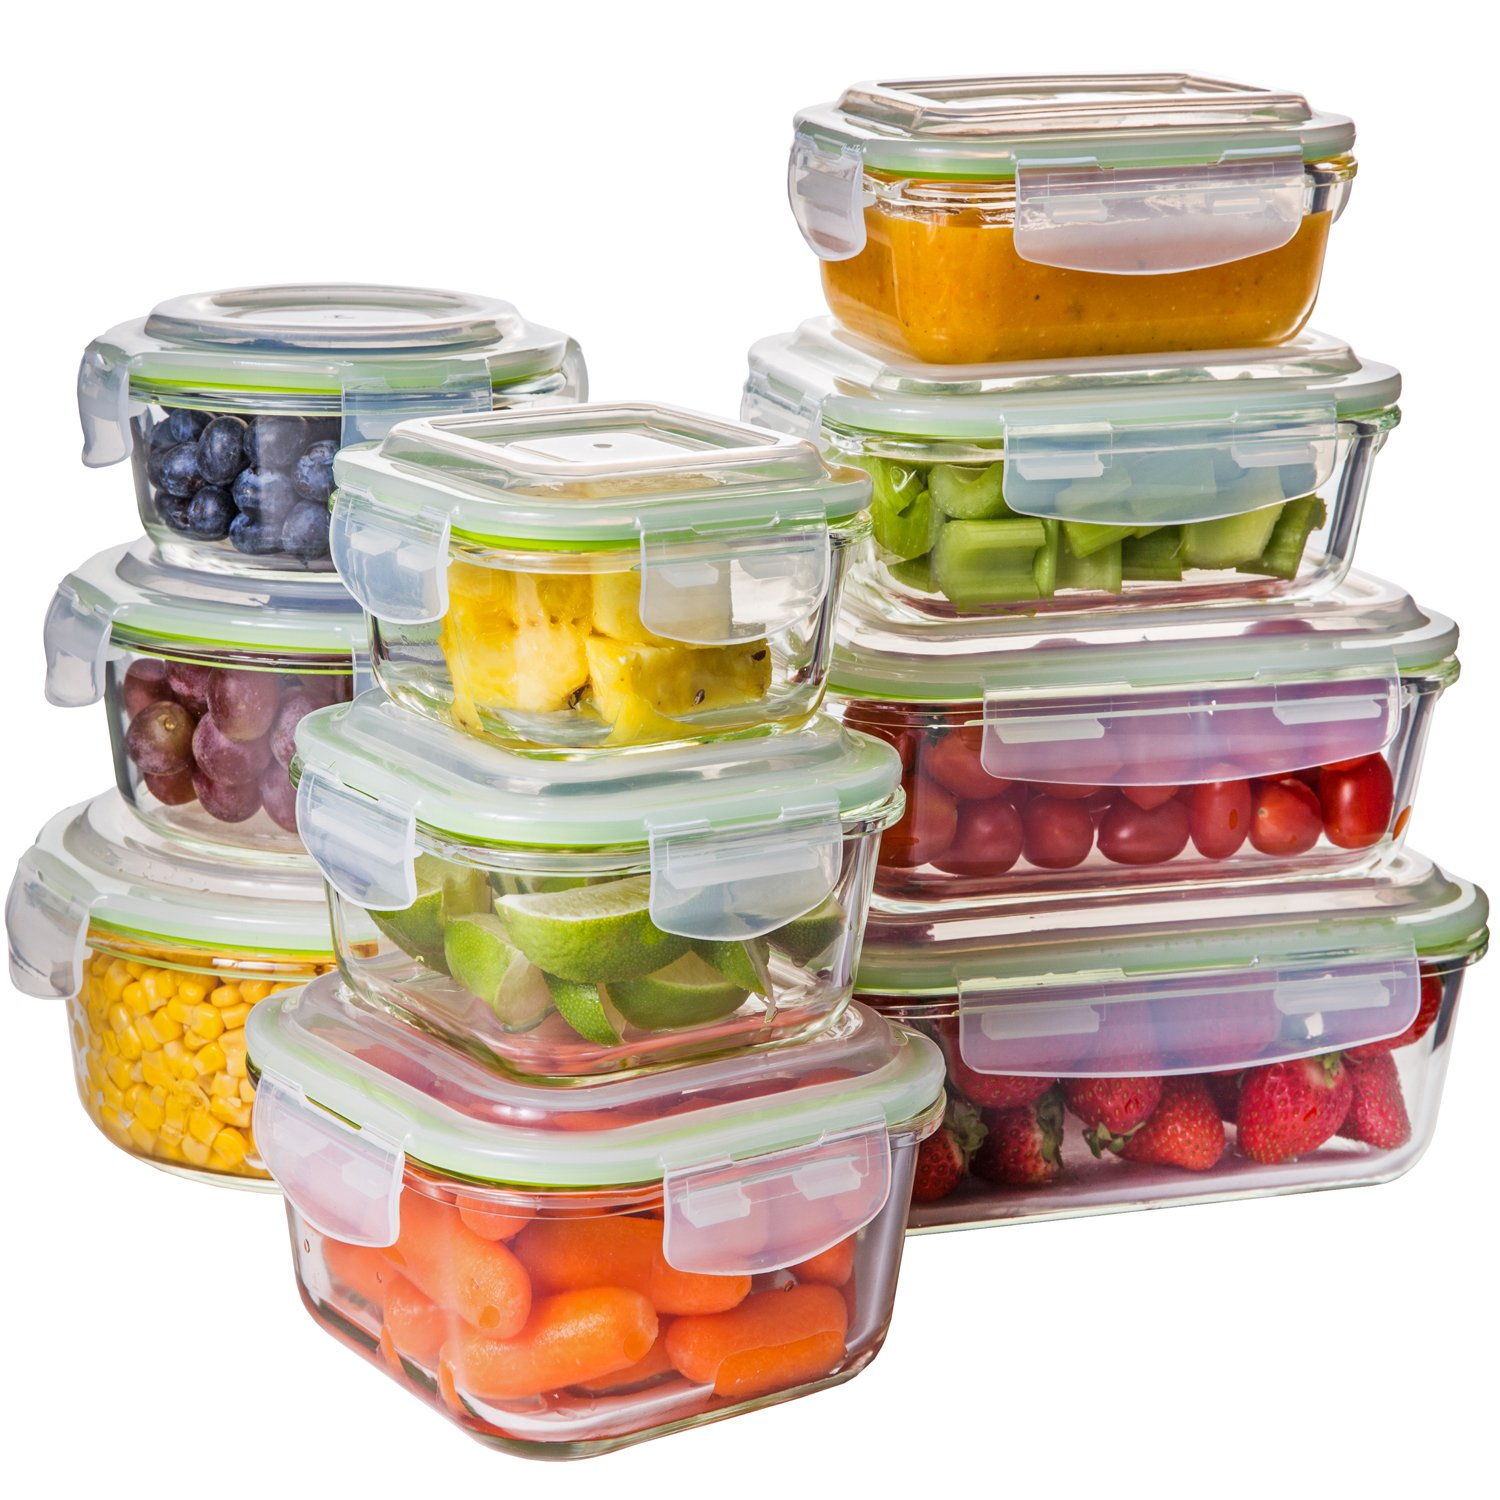 Zenware COMIN18JU082710 20 Piece Microwave Safe Glass Food Storage Container Set, Green